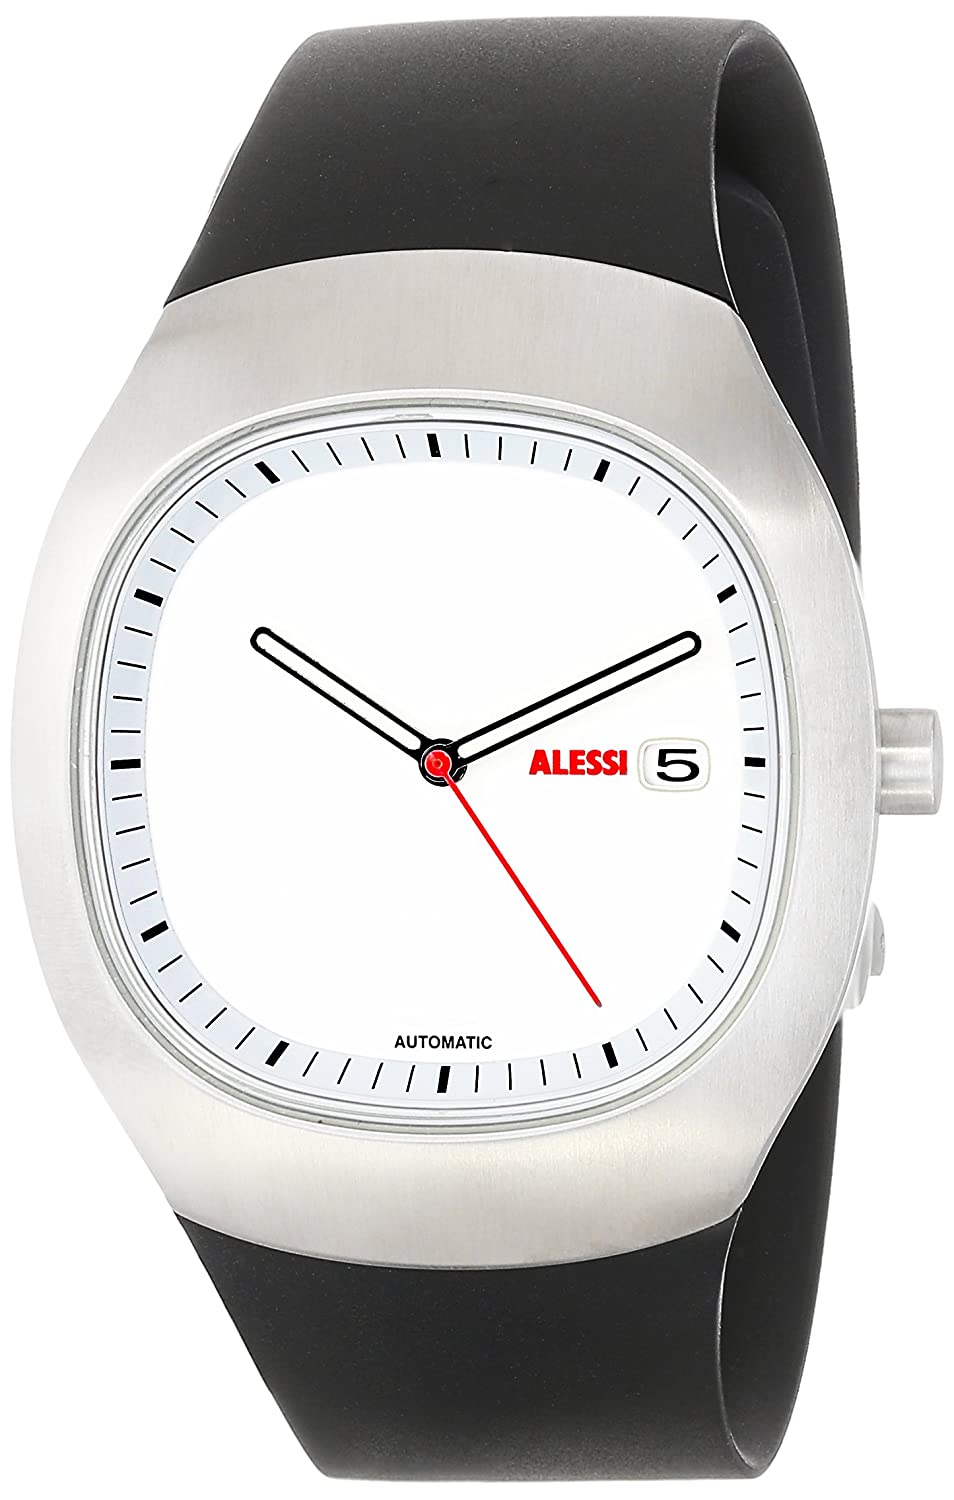 amazoncom alessi men's al ray stainless steel automatic  - amazoncom alessi men's al ray stainless steel automatic watchwatches